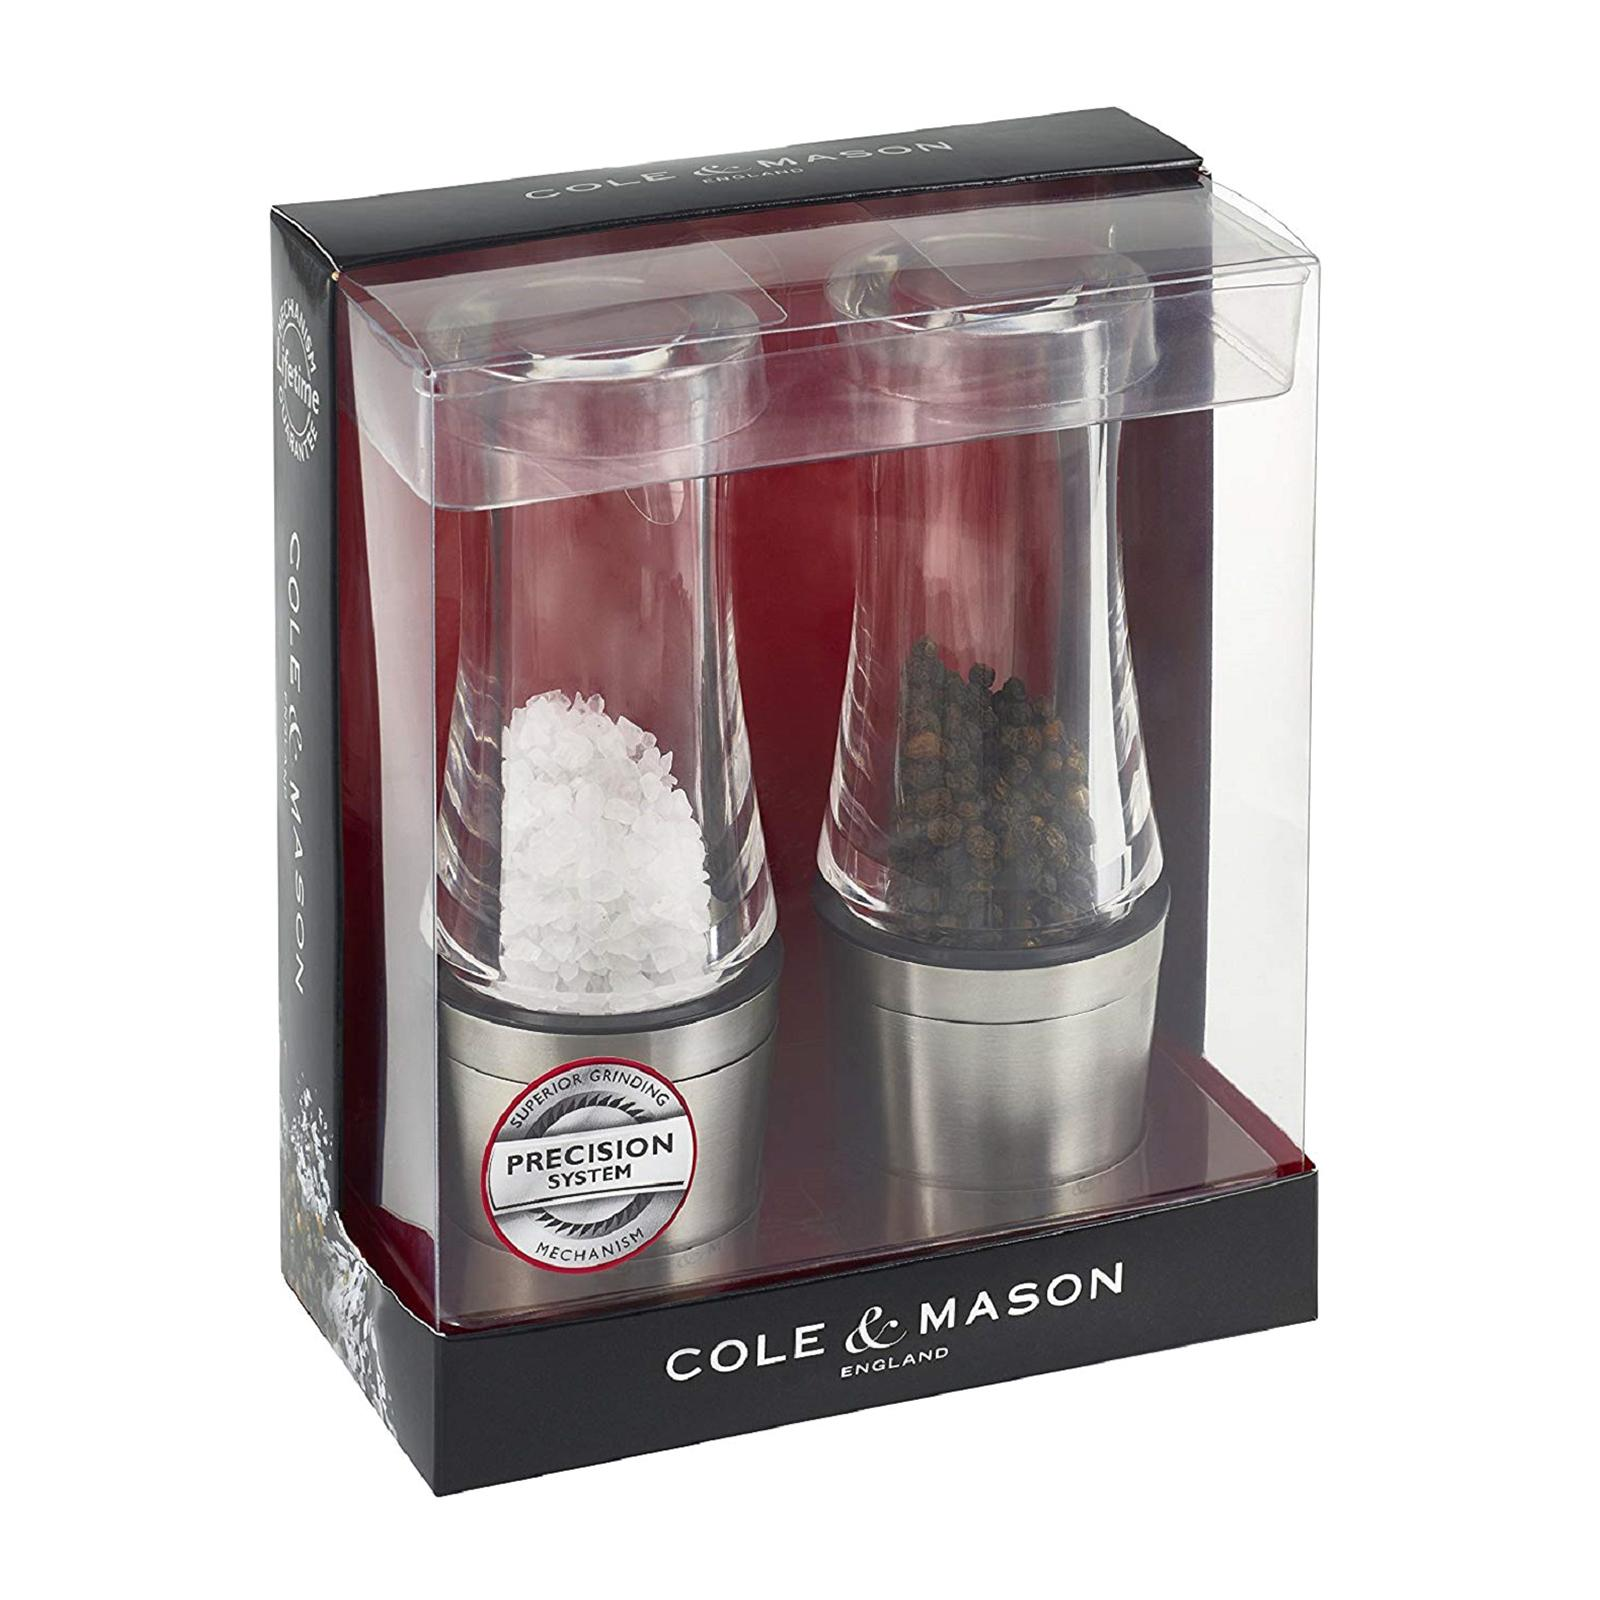 Cole & Mason Stainless Steel Acrylic Downton Salt And Pepper Mill Gift Set